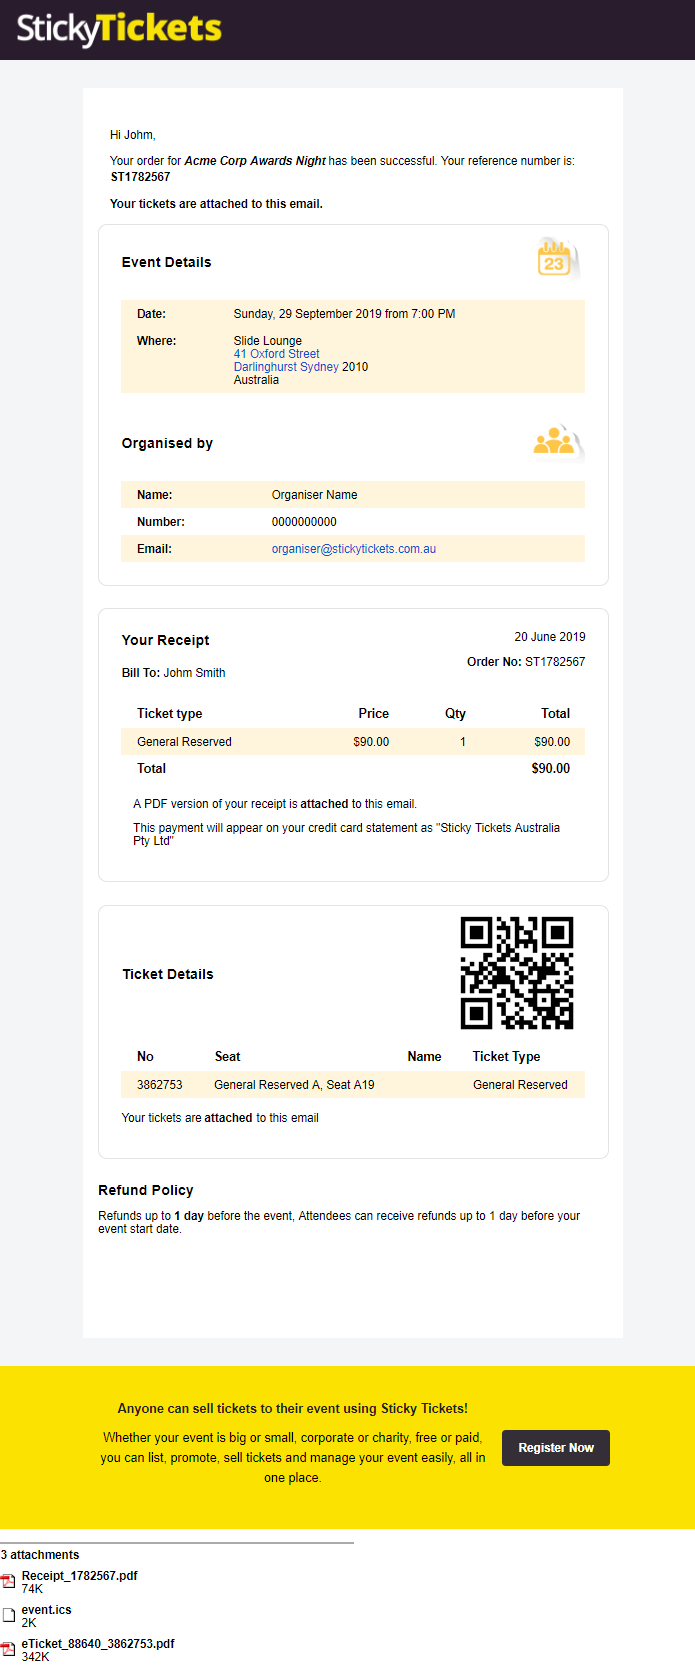 Frequently Asked Questions - Sticky Tickets